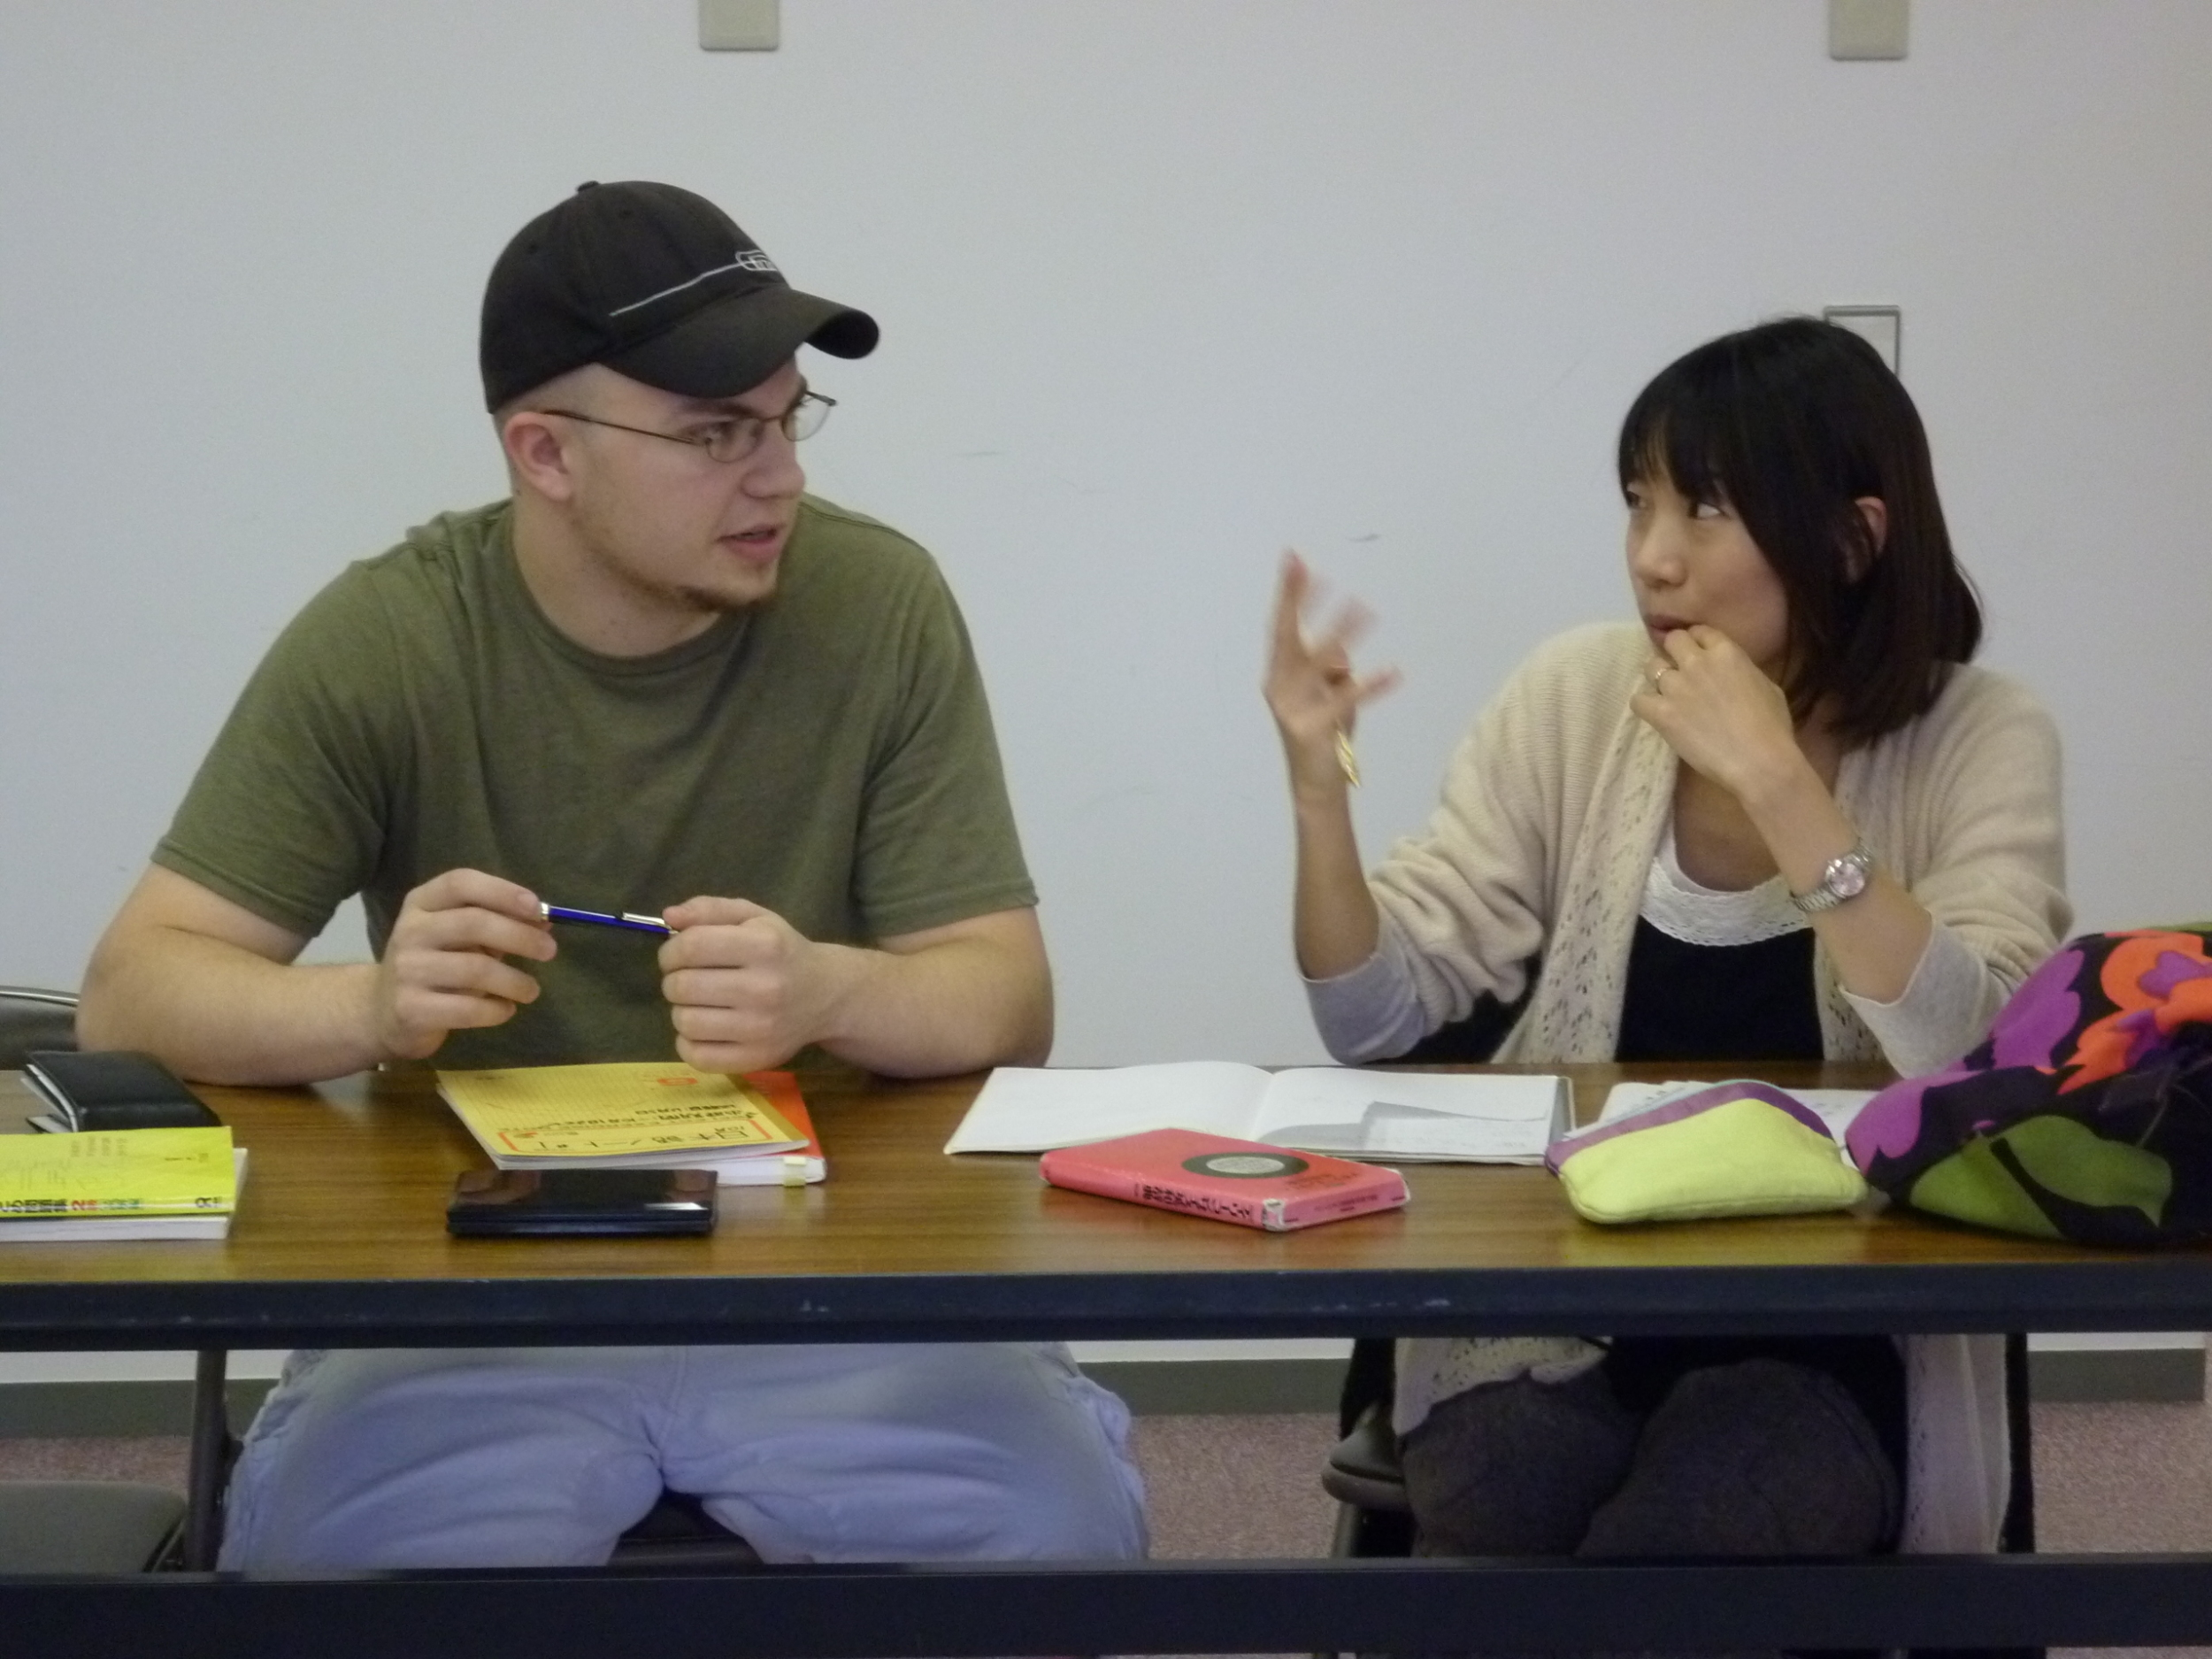 教える男性 Japanese class nagoya one on one 日本語教室名古屋